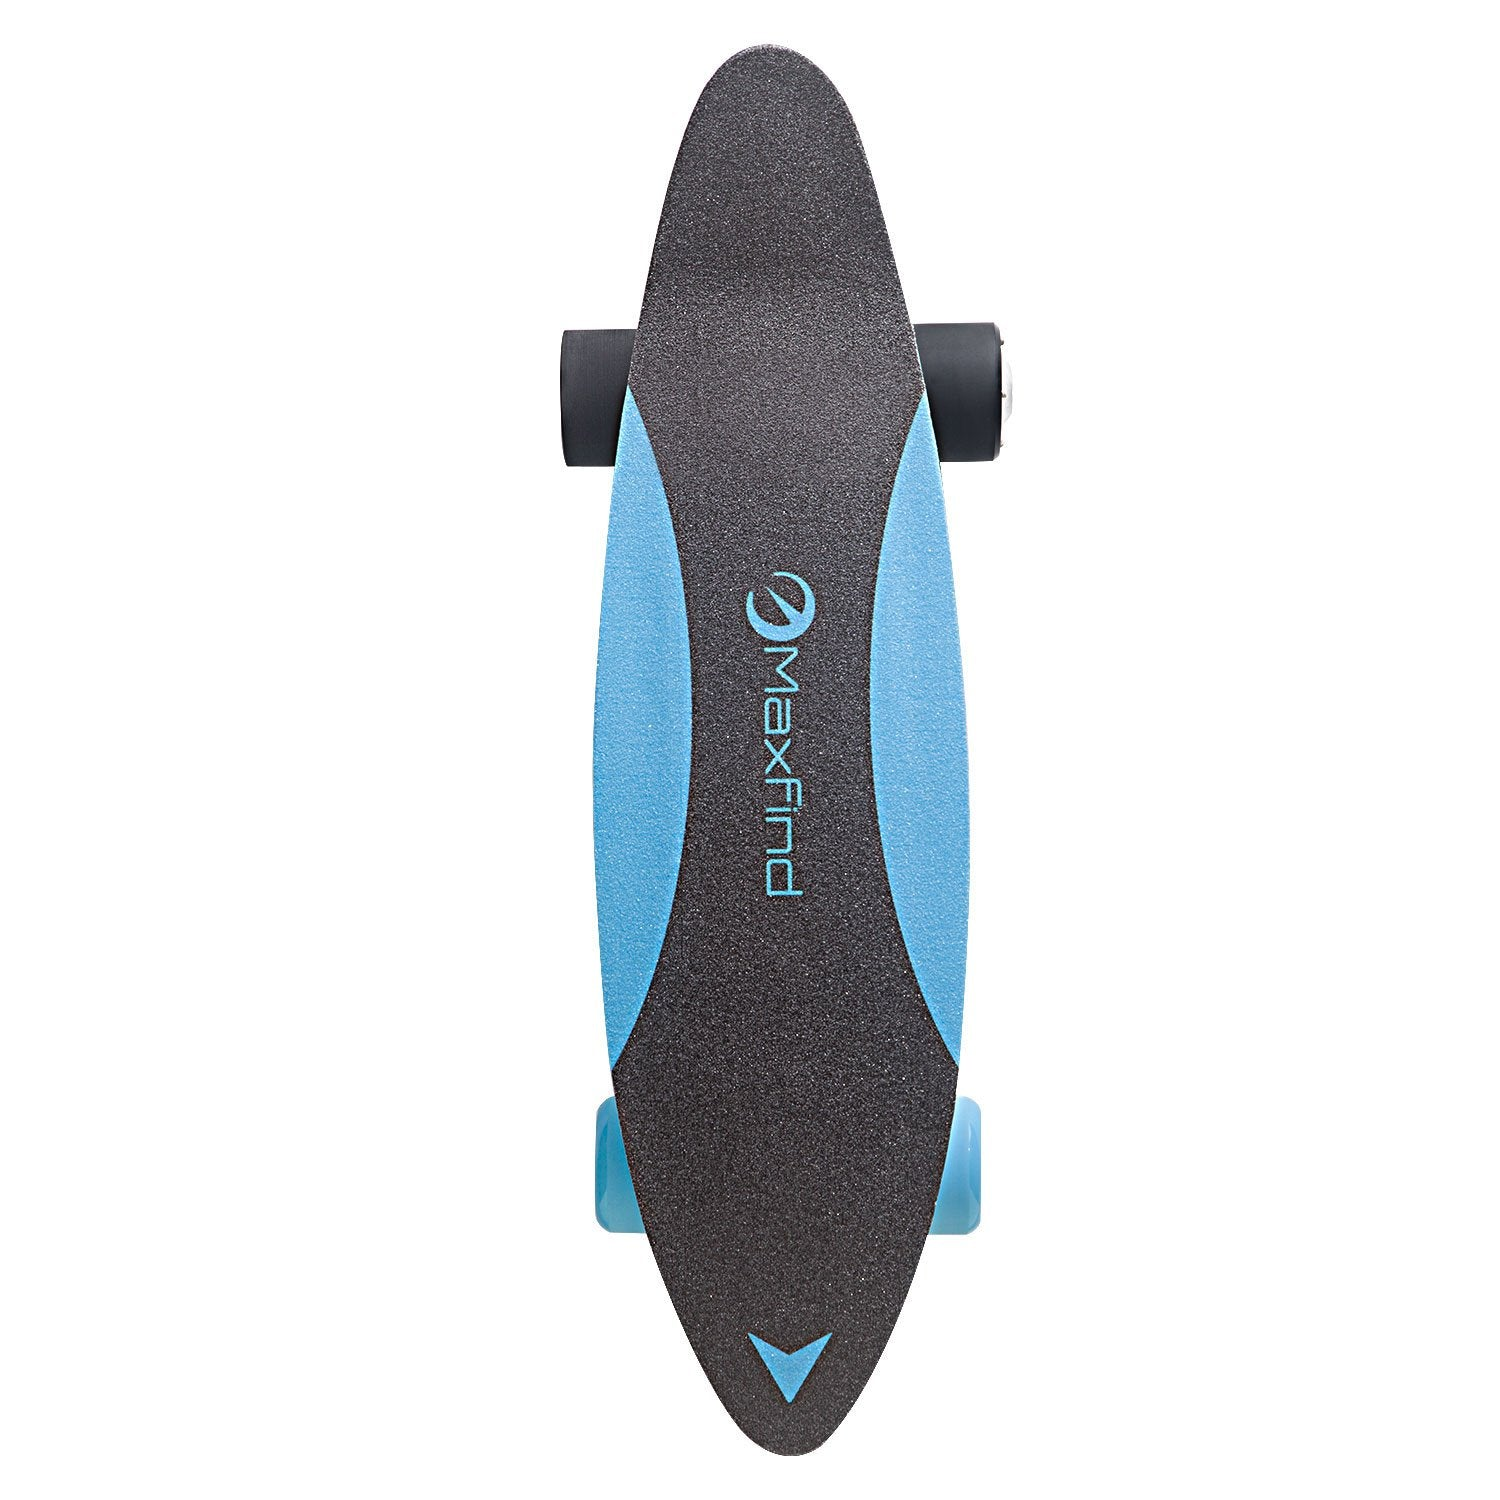 "MaxFind - 27"" Electric Skateboard"